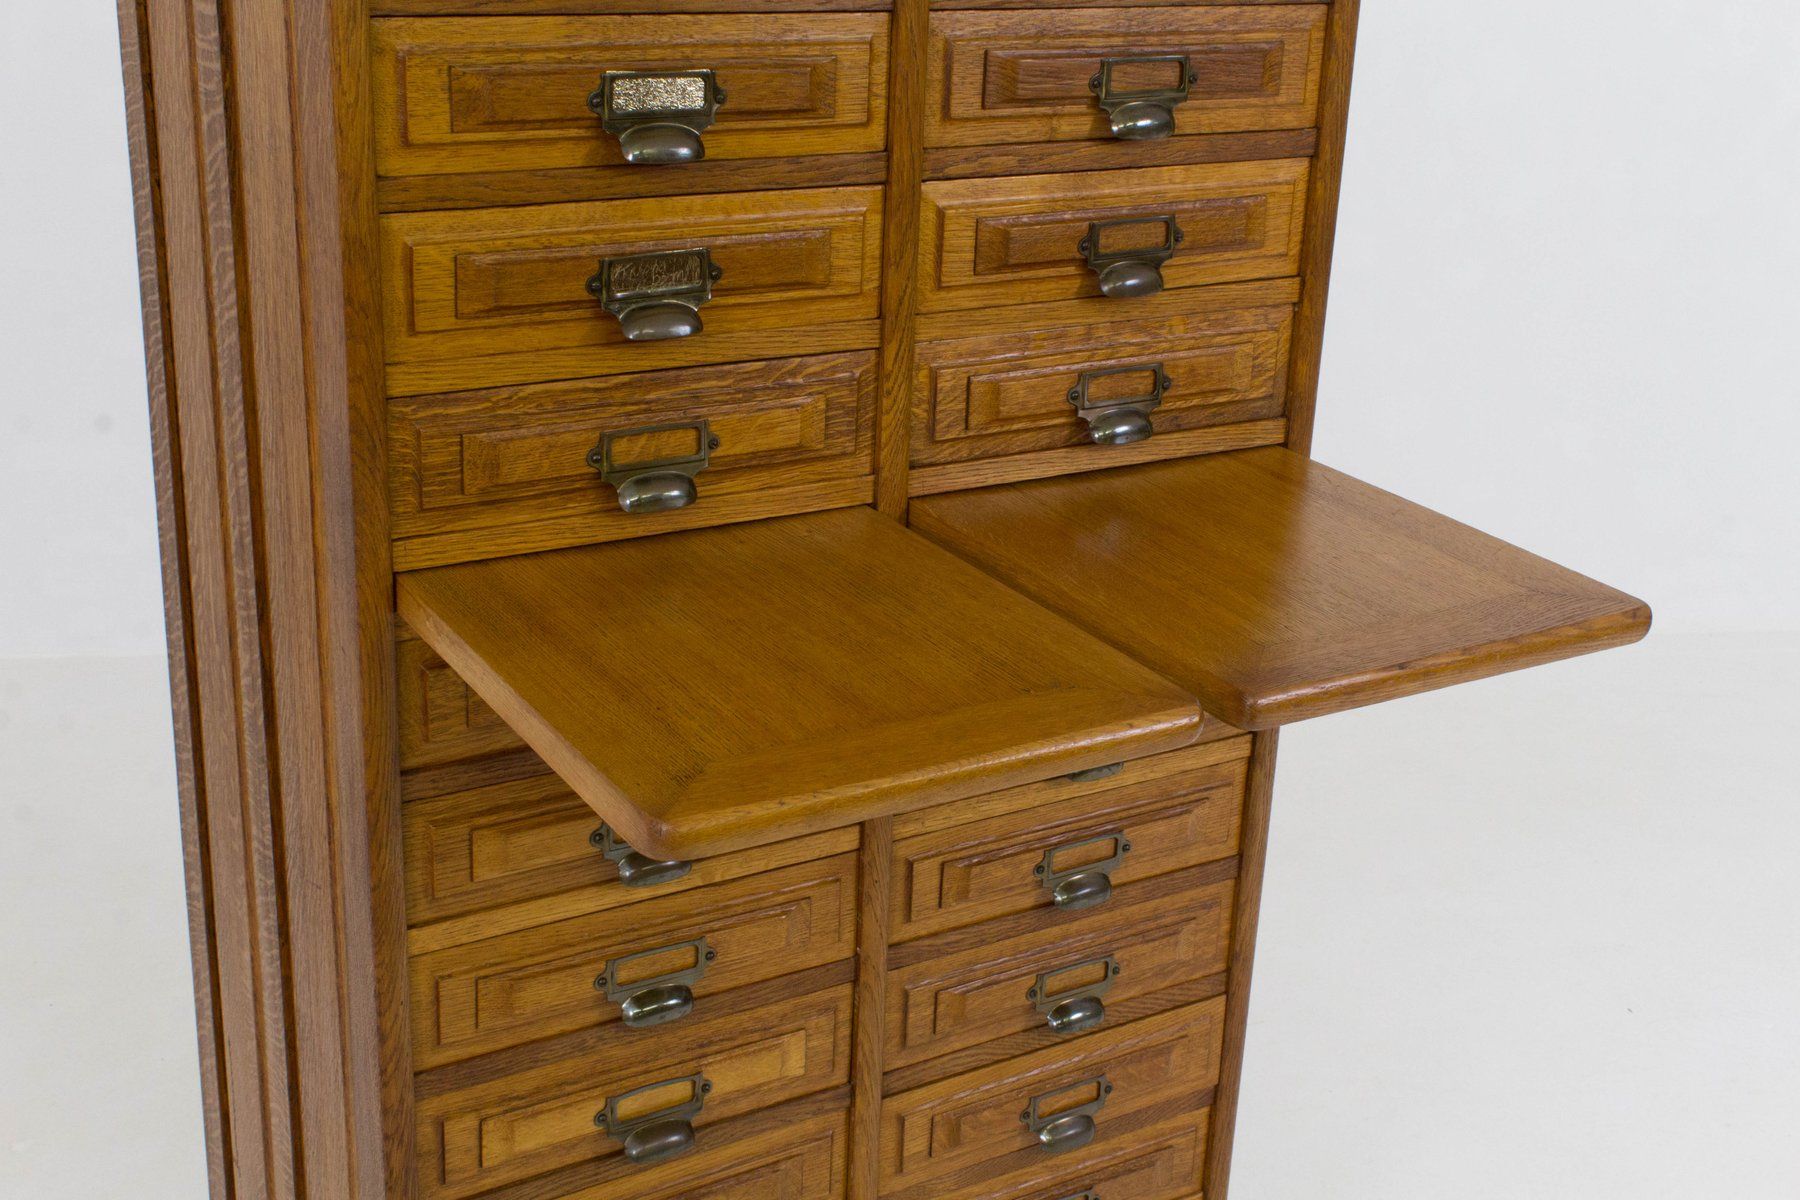 French Art Deco Haberdashery Cabinet, 1920s for sale at Pamono